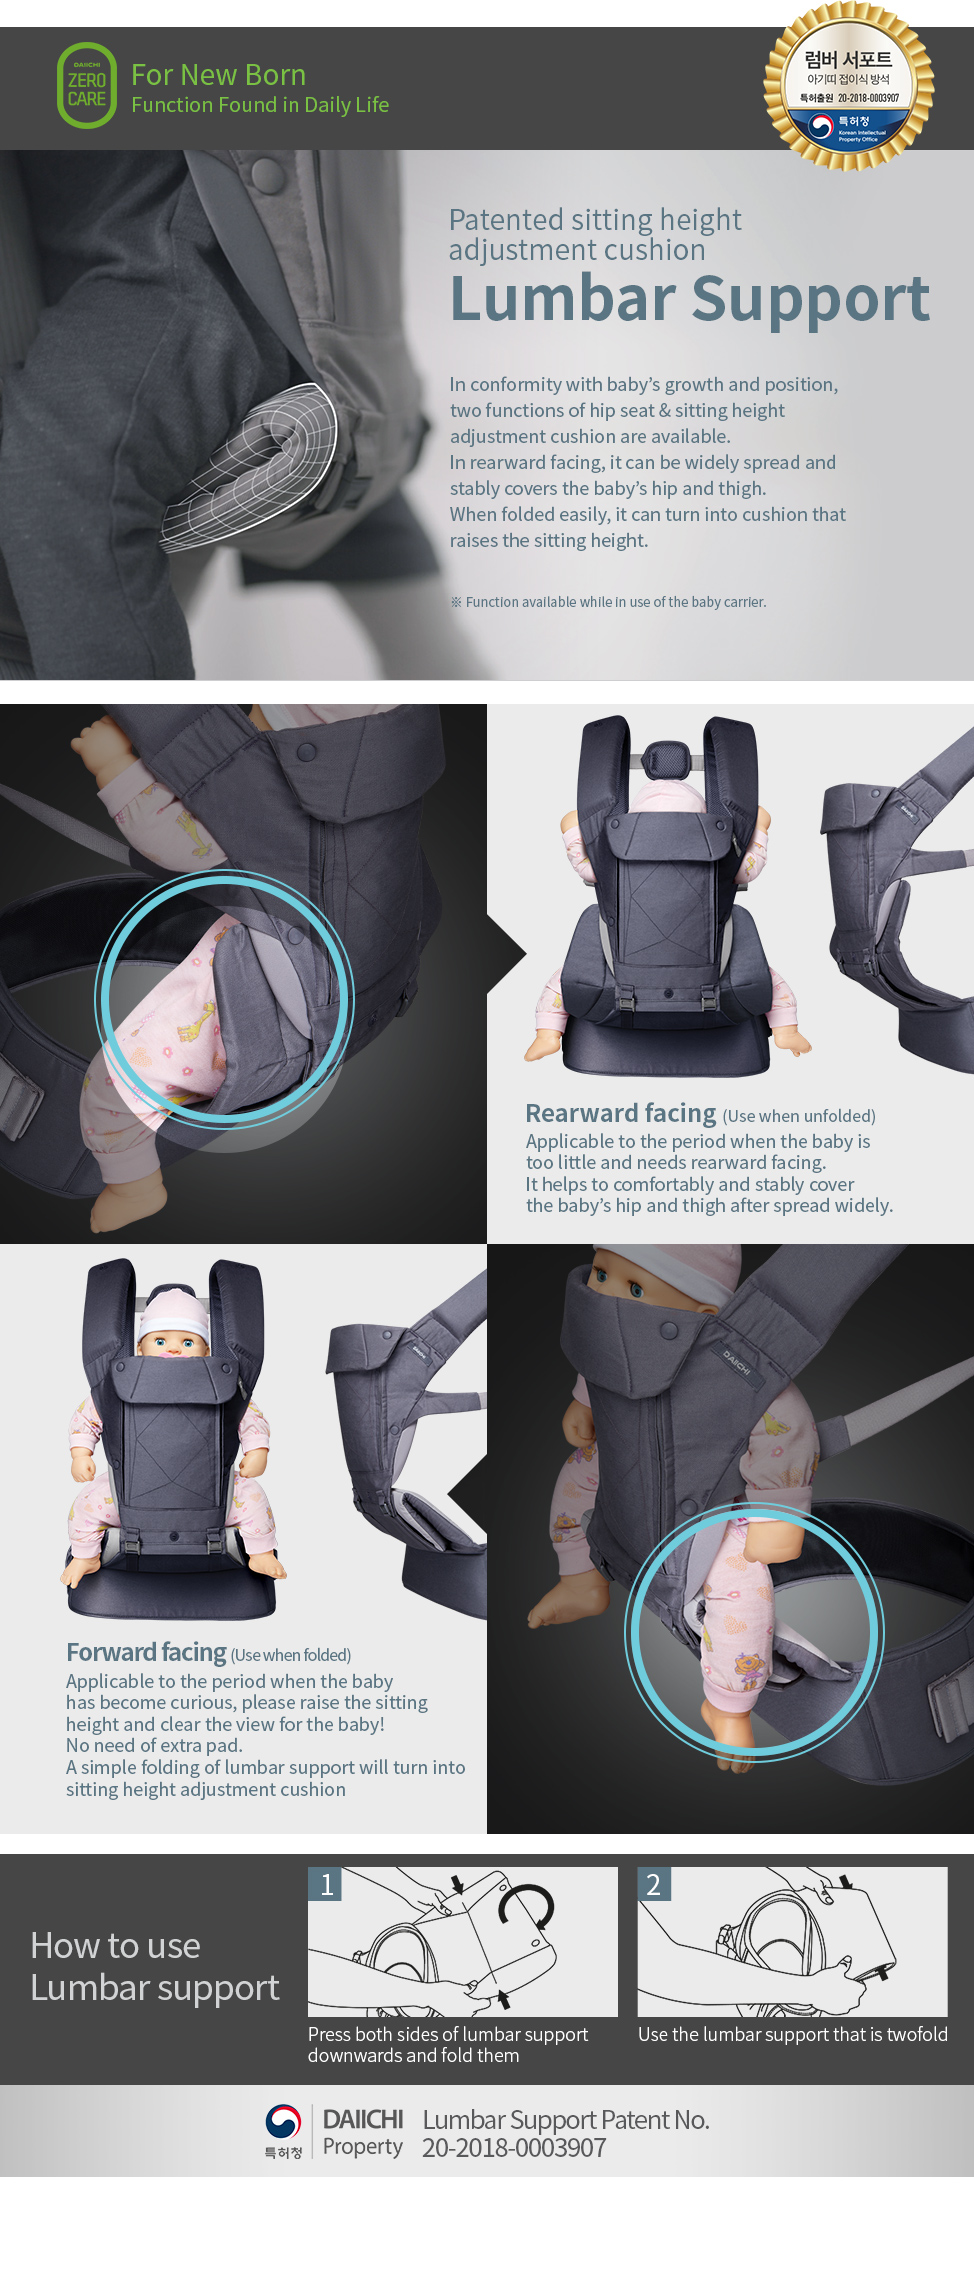 Patented sitting height adjustment cushion, Lumbar Support. In conformity with baby's growth and position, two functions of hip seat and sitting height adjustment cushion are available.